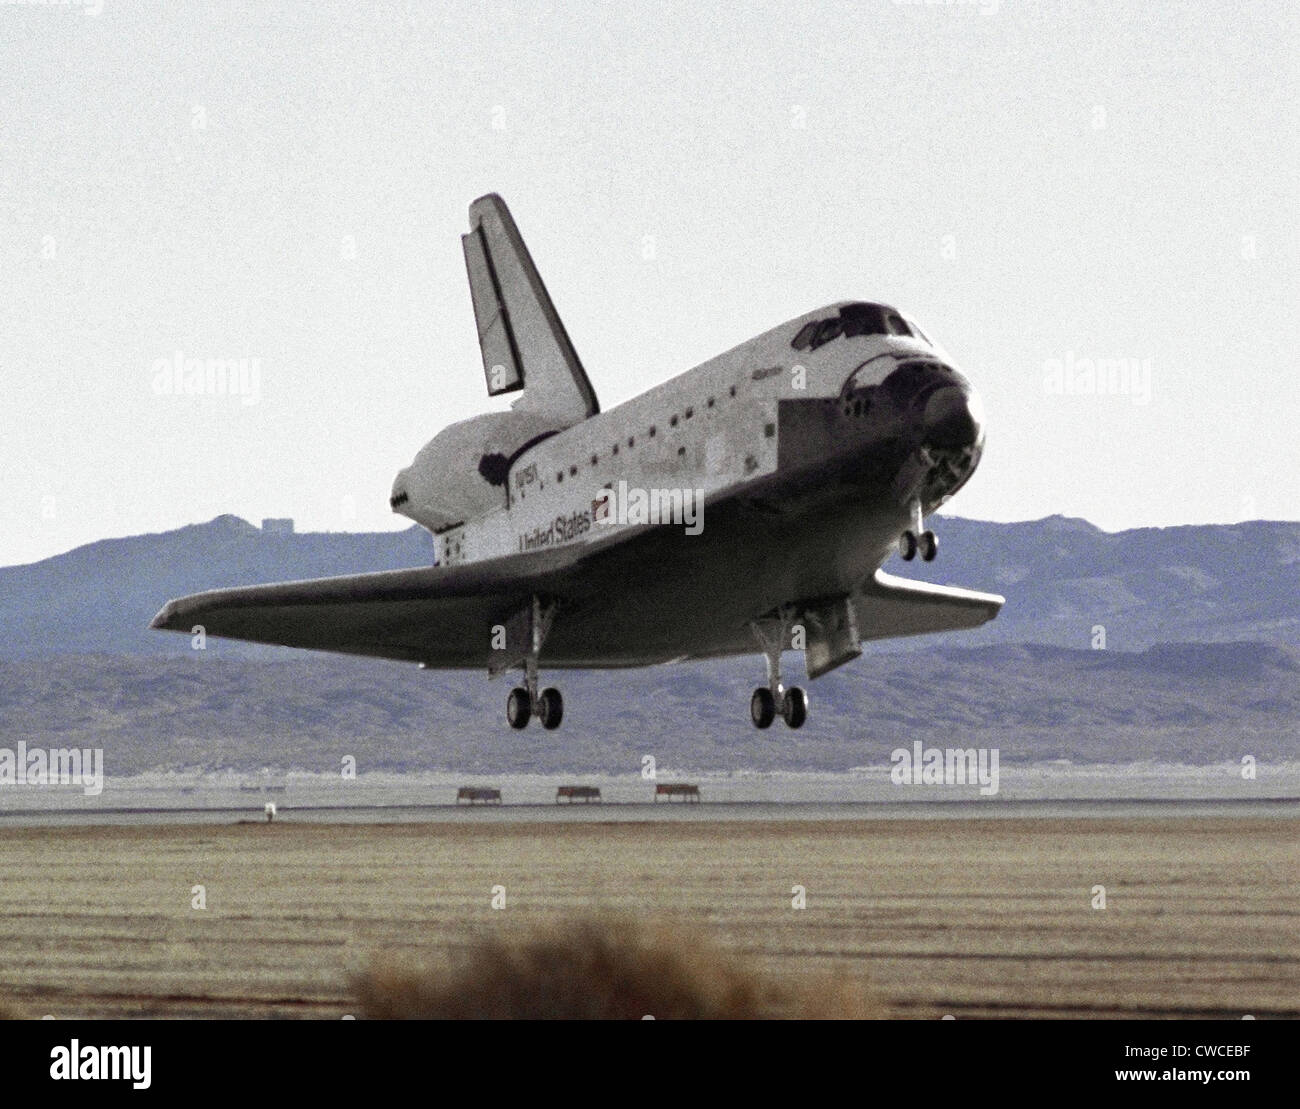 space shuttle landing at edwards air force base - photo #3